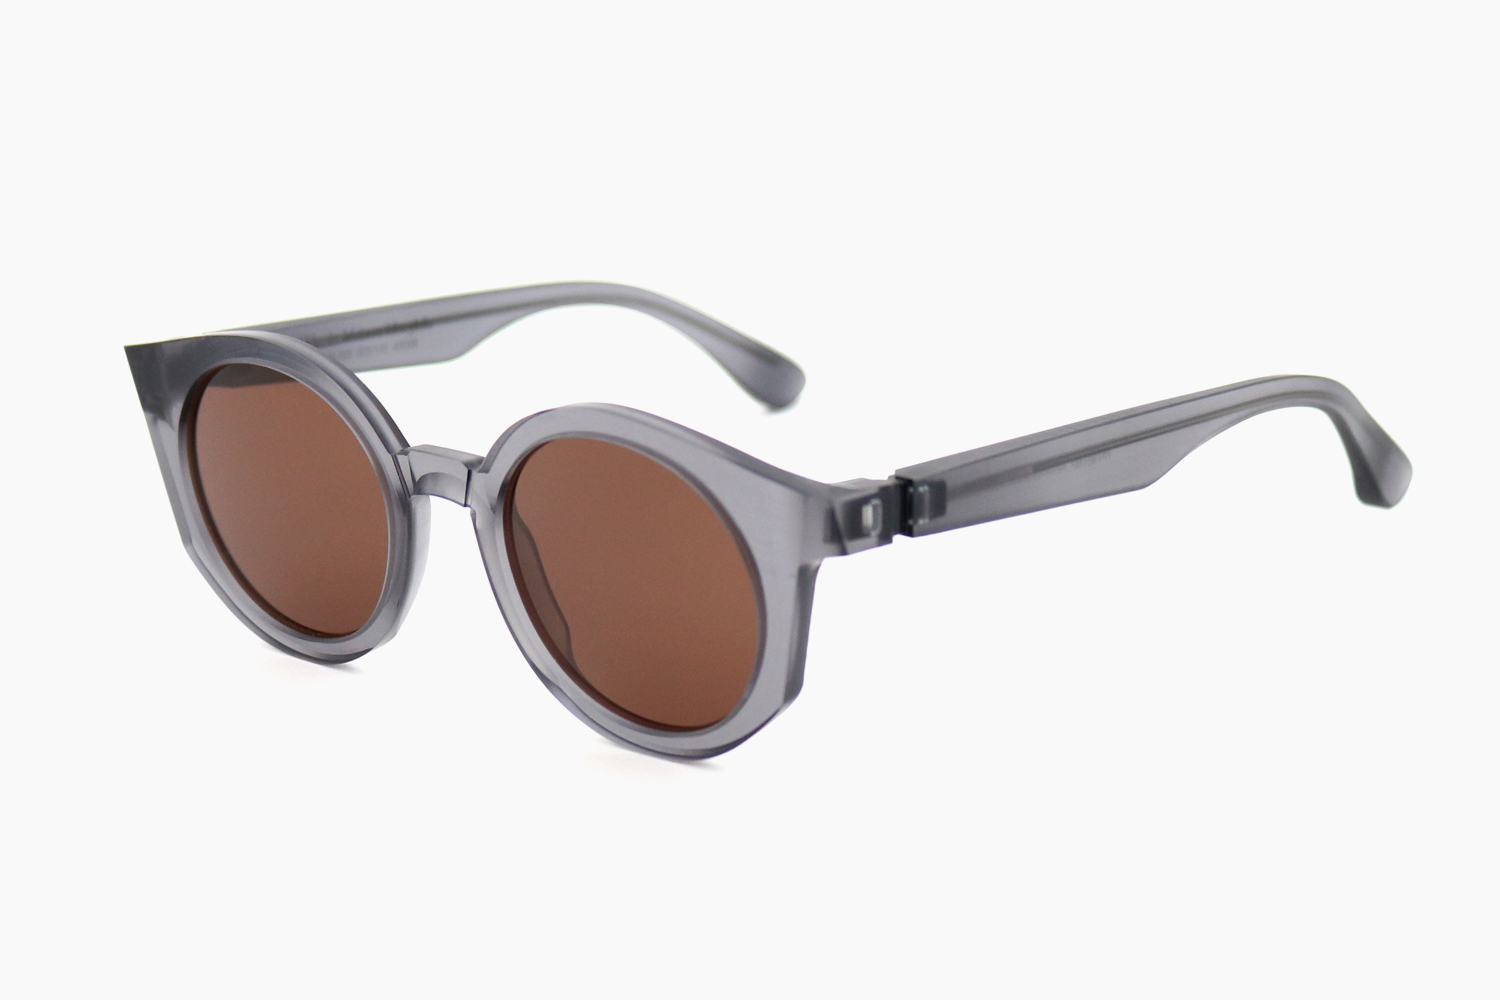 MYKITA+Maison Margiela|MMRAW013 - 823|SUNGLASSES COLLECTION - 21SS